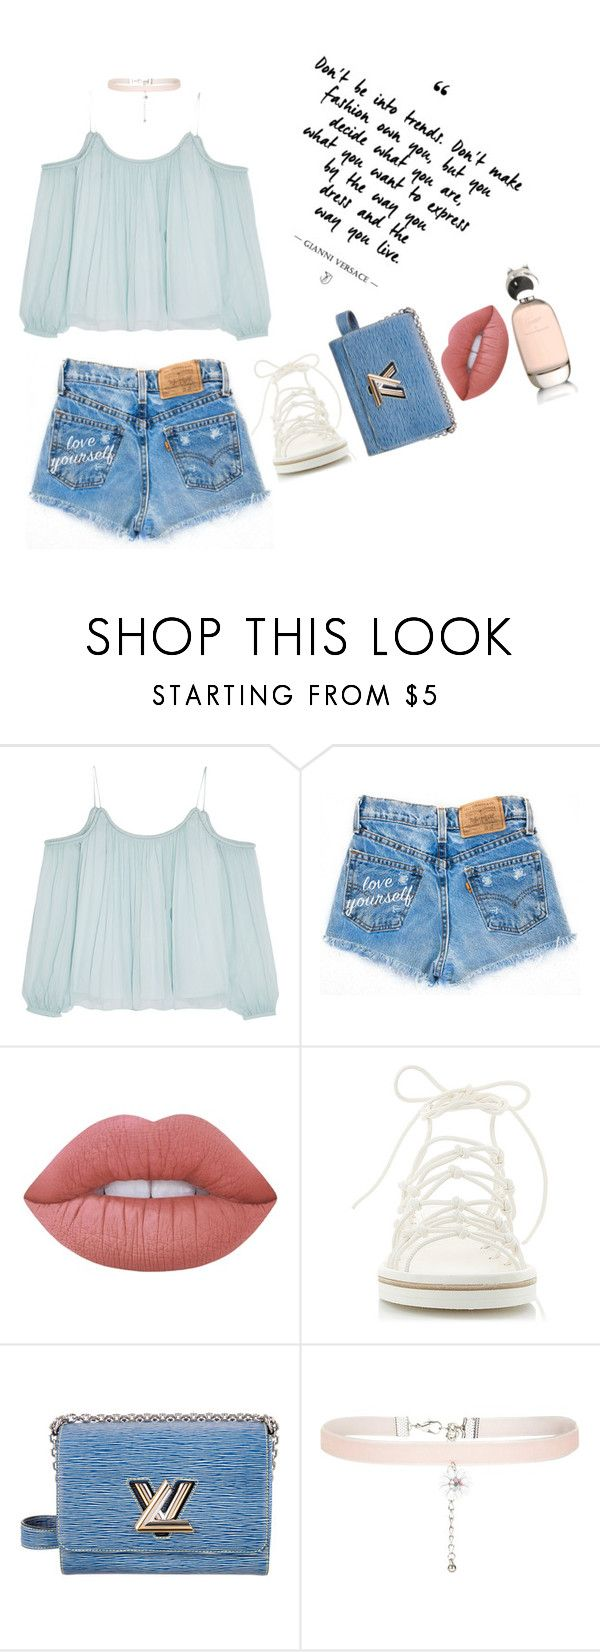 """Summer Passion"" by dorisruiyingli ❤ liked on Polyvore featuring Elizabeth and James, Lime Crime, Chloé, Louis Vuitton, New Look and Comme des Garçons"